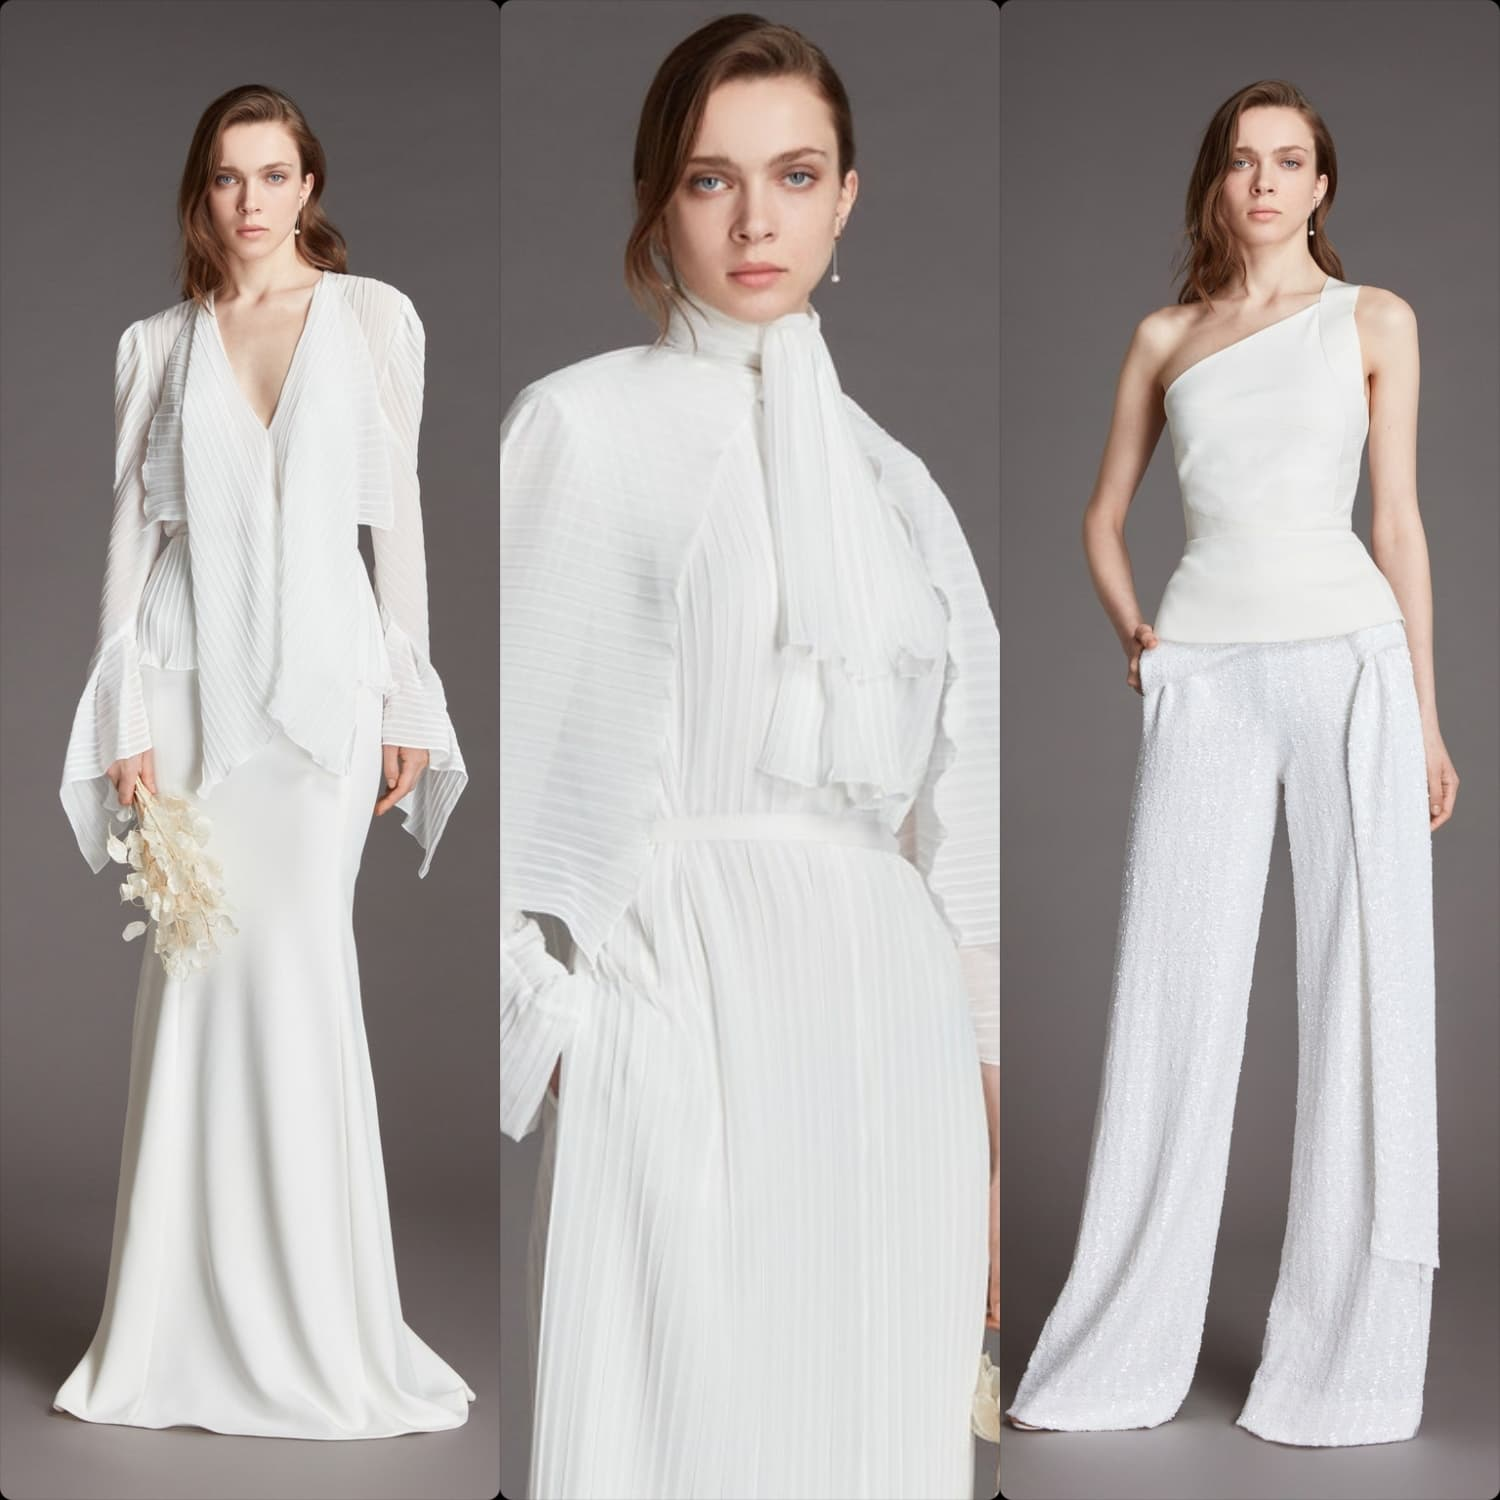 Roland Mouret Bridal Spring Summer 2021 London. RUNWAY MAGAZINE ® Collections. RUNWAY NOW / RUNWAY NEW